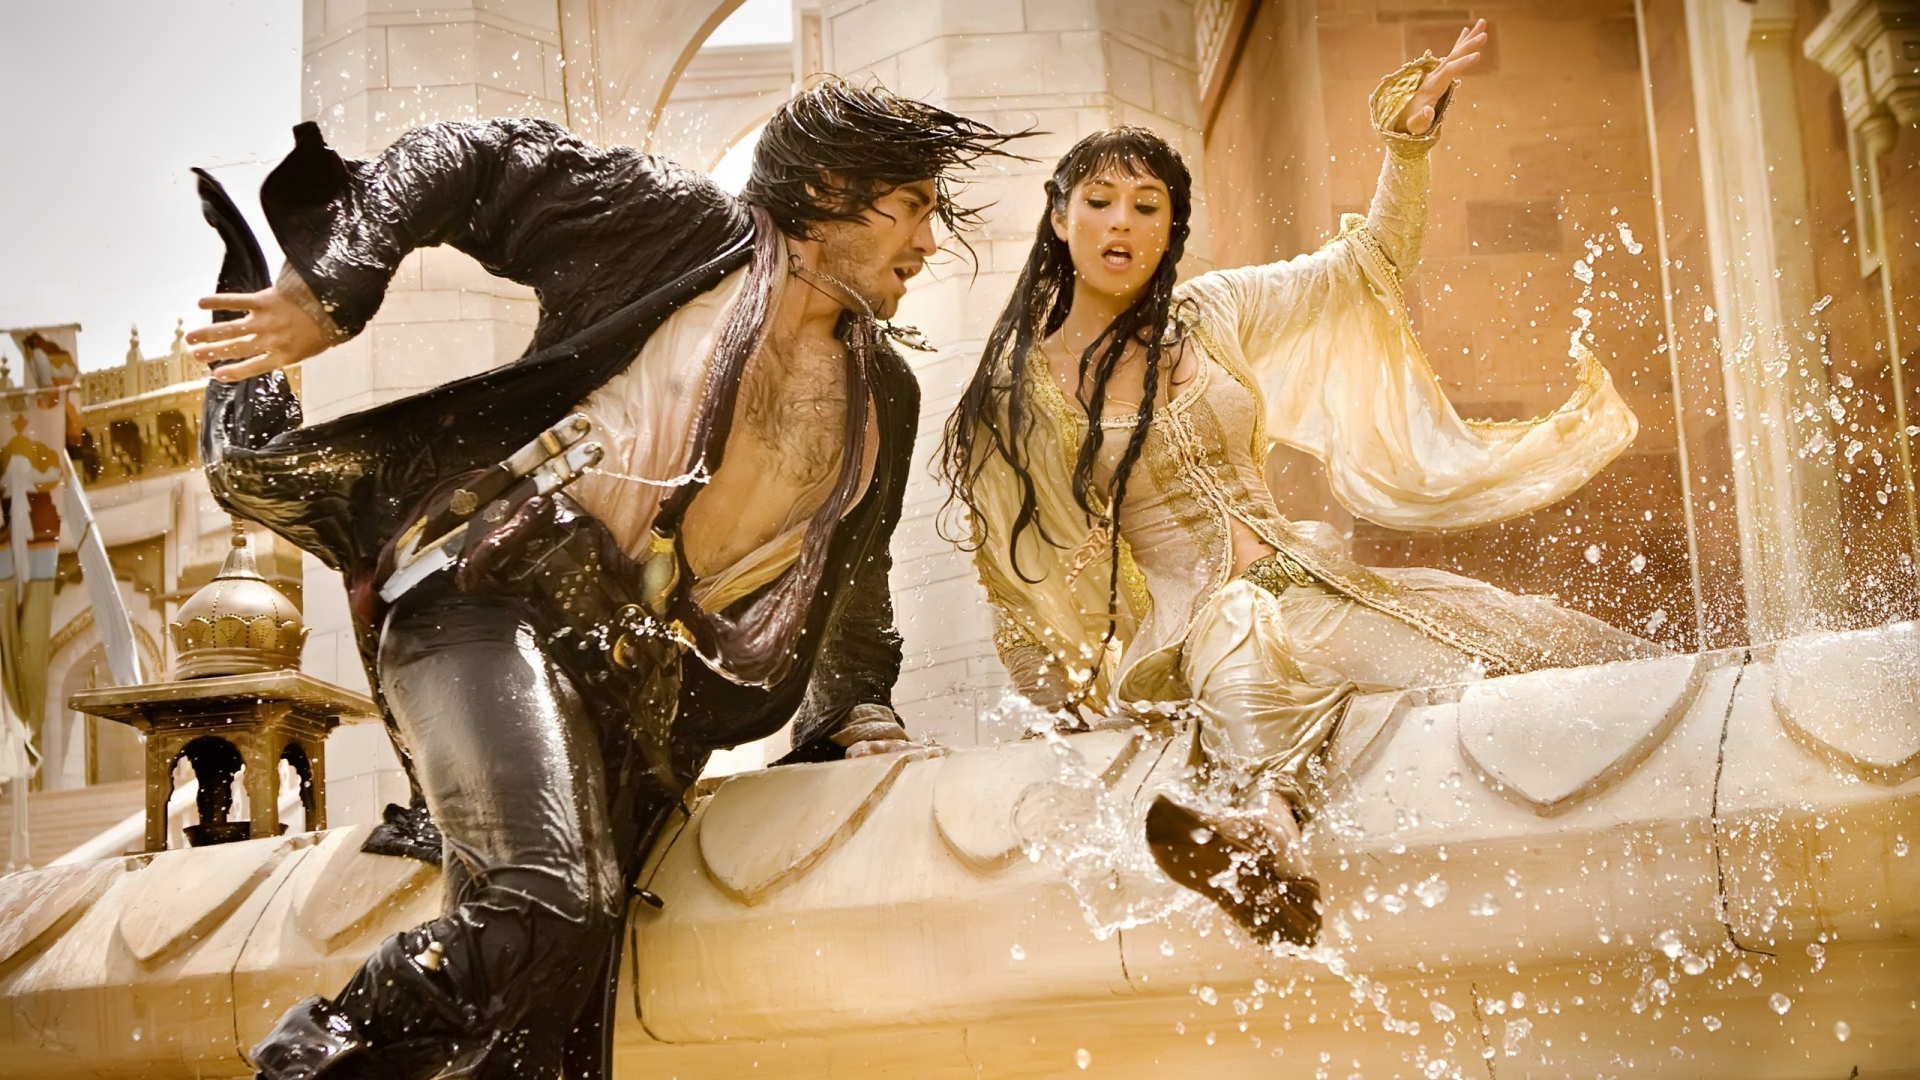 Prince Of Persia: The Sands of Time Movie for 1920 x 1080 HDTV 1080p resolution